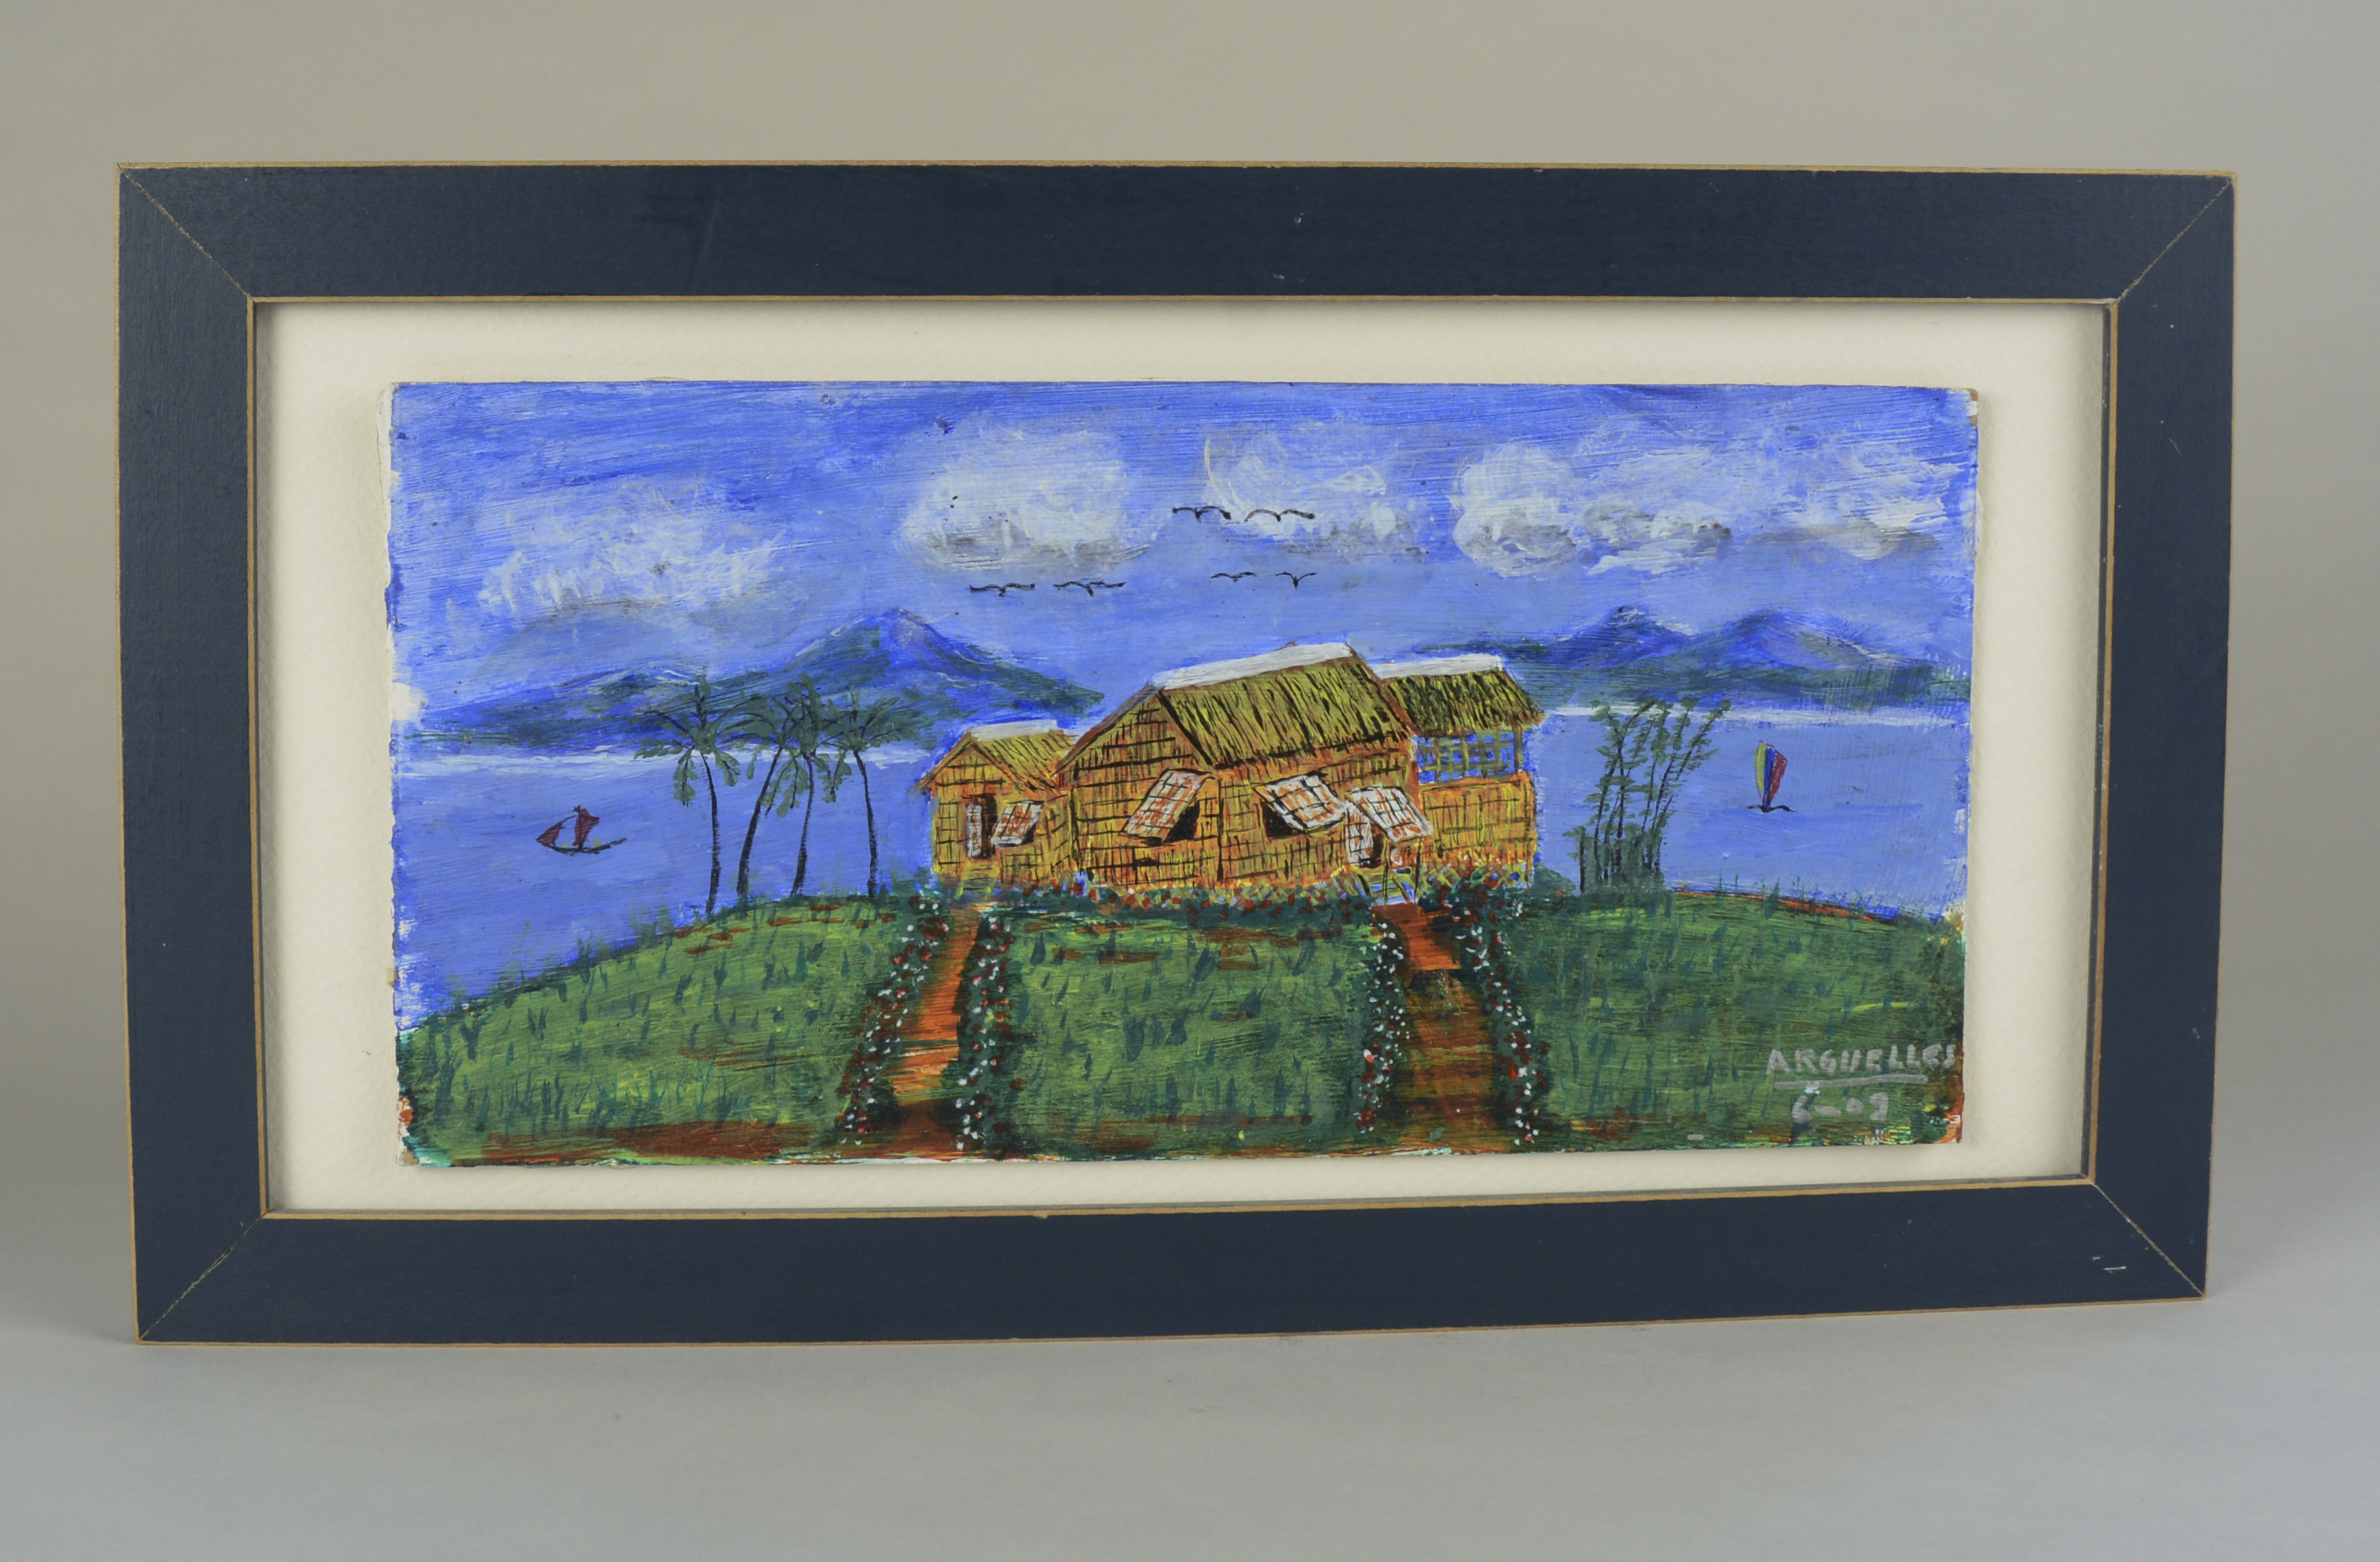 """Painting owned by Magdalena Arguelles.The painting was made in 2009 in Chicago. Arguelles said her father Jose made it from memory at the age of 78. He was not a trained artist. Arguelles' father gave her the painting as a gift. The painting depicts an island off of Iloilo called Nasidman Island, which is part of Ajuy, Iloilo. It is a private homesteaded island. The painting is signed """"Arguelles 2009"""". Arguelles said the painting is important because it is where she comes from.   Any views, findings, conclusions, or recommendations expressed in this story do not necessarily represent those of the National Endowment for the Humanities. (c) Field Museum of Natural History - CC BY-NC 4.0"""